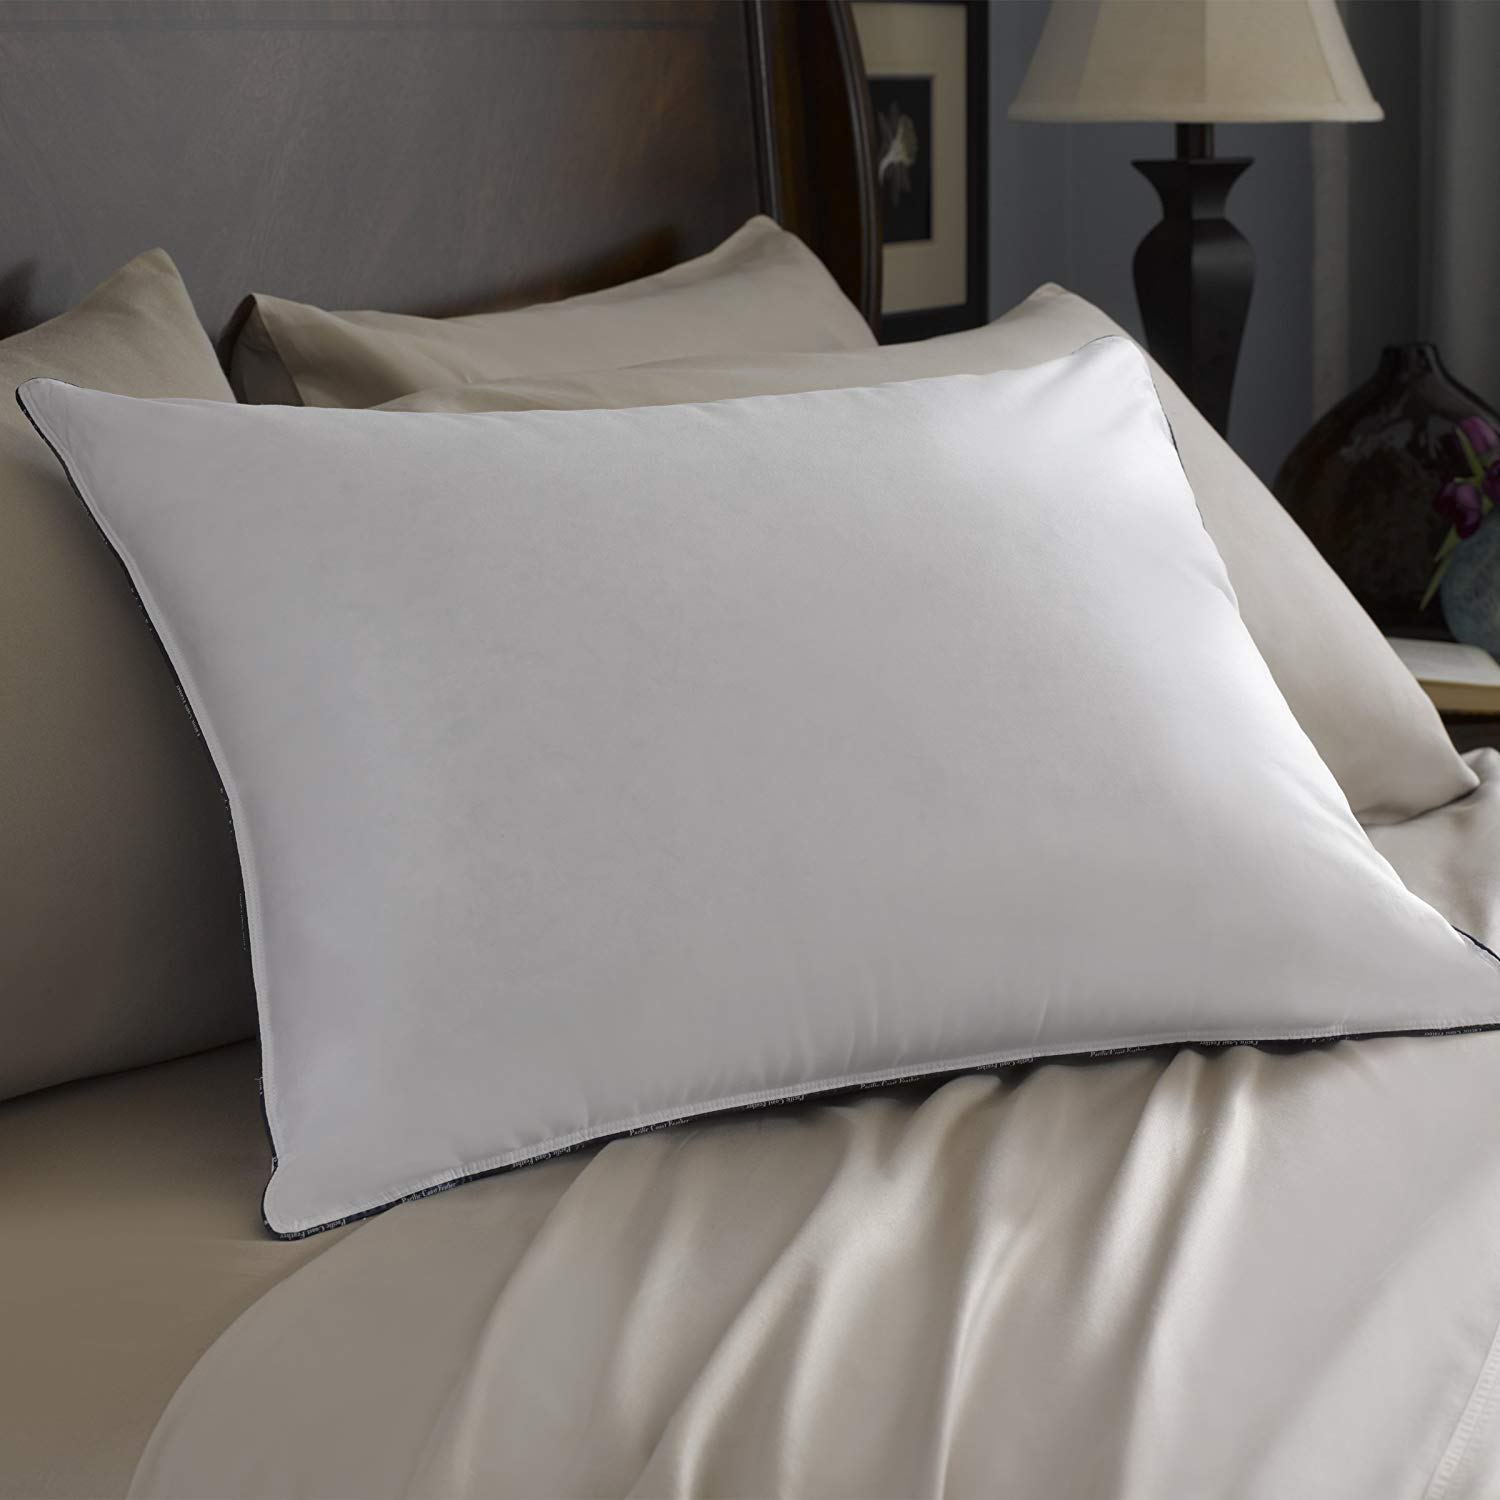 Pacific Coast best feather pillows review by www.dailysleep.org